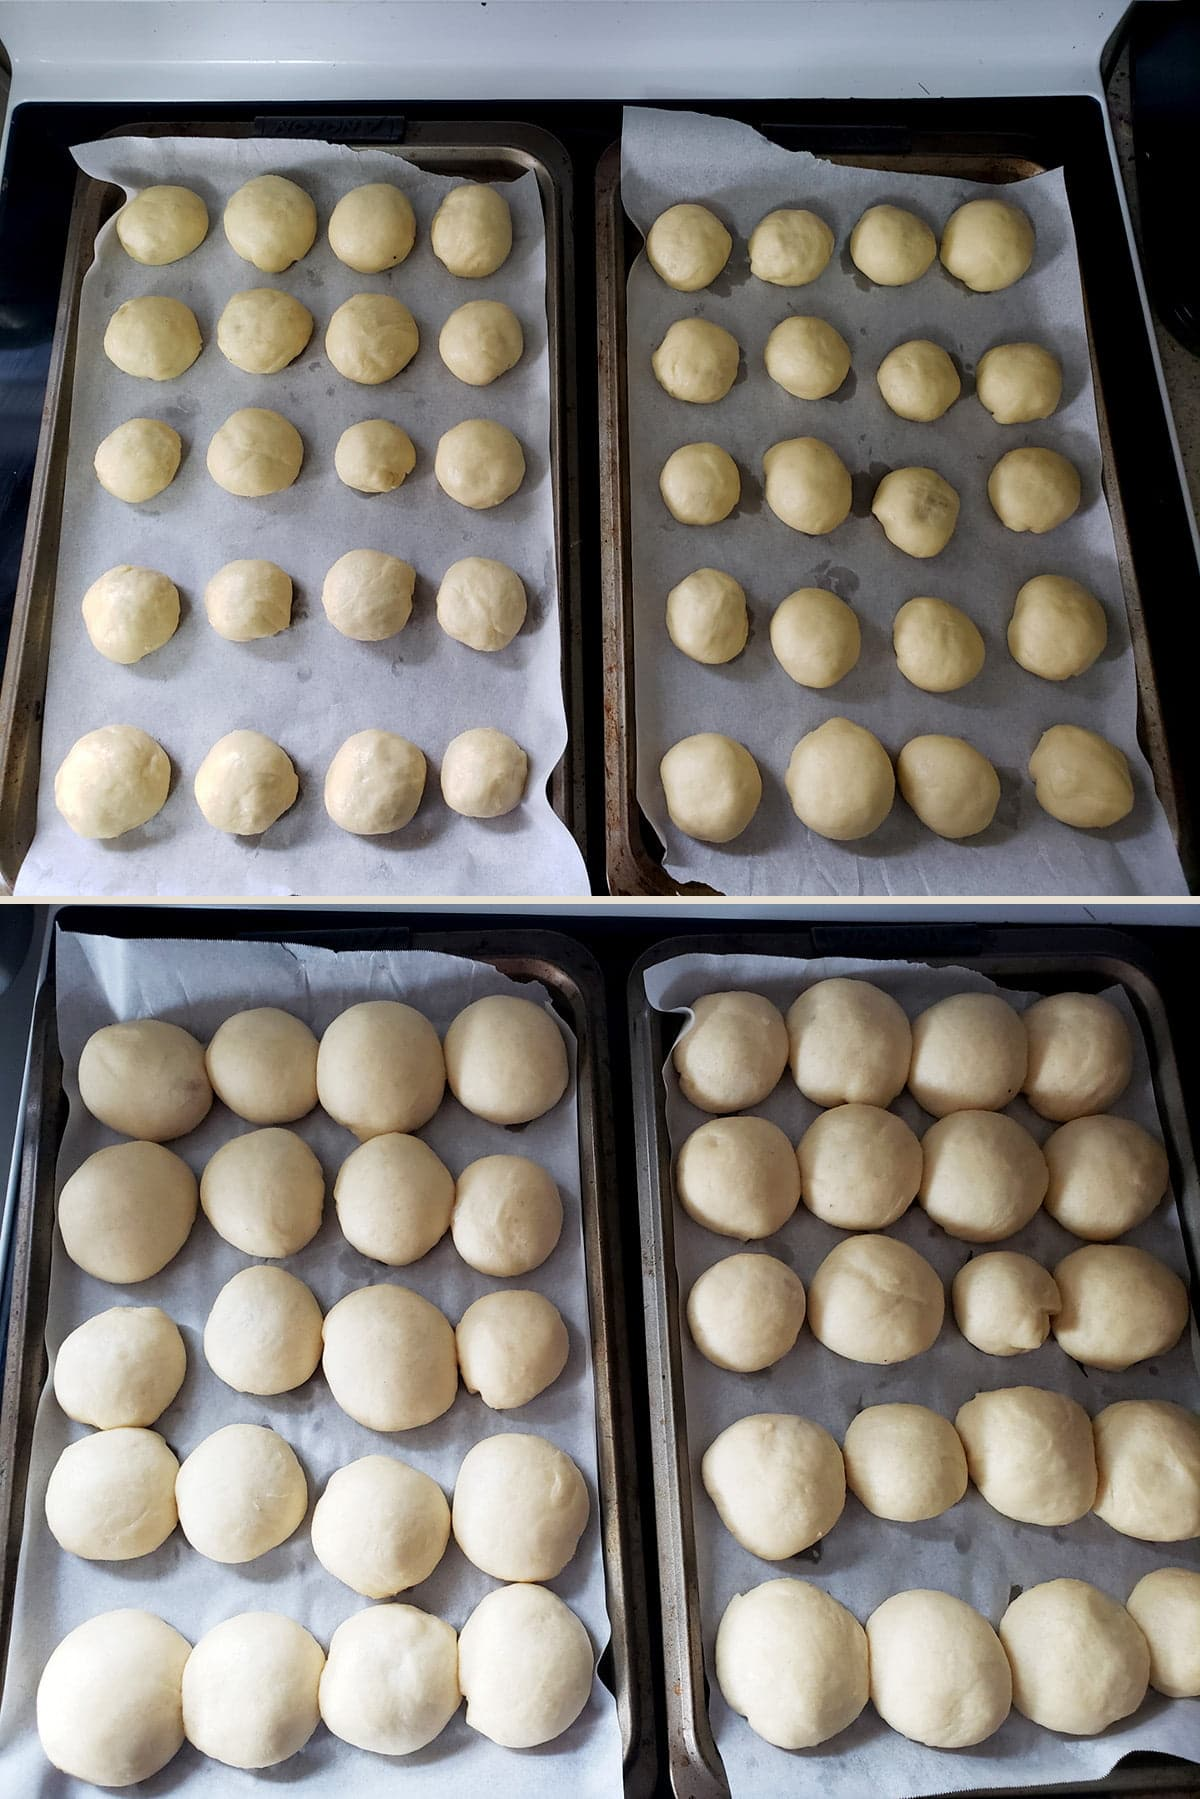 A two photo collage, showing 2 trays of unbaked Pyrizhky buns, before and after the final rise.